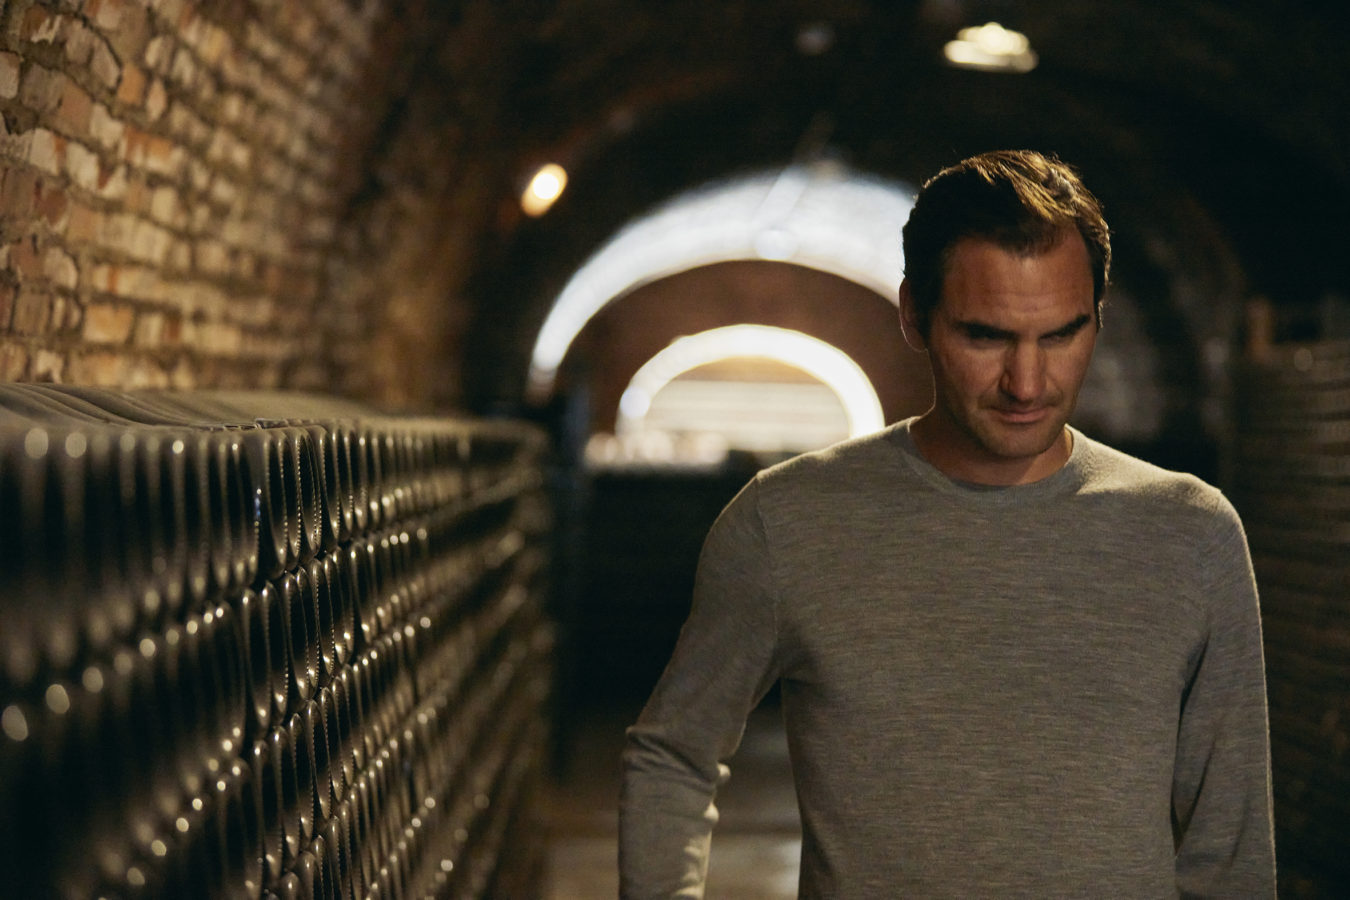 Video: Roger Federer uncovers the mysteries behind the Moët Imperial